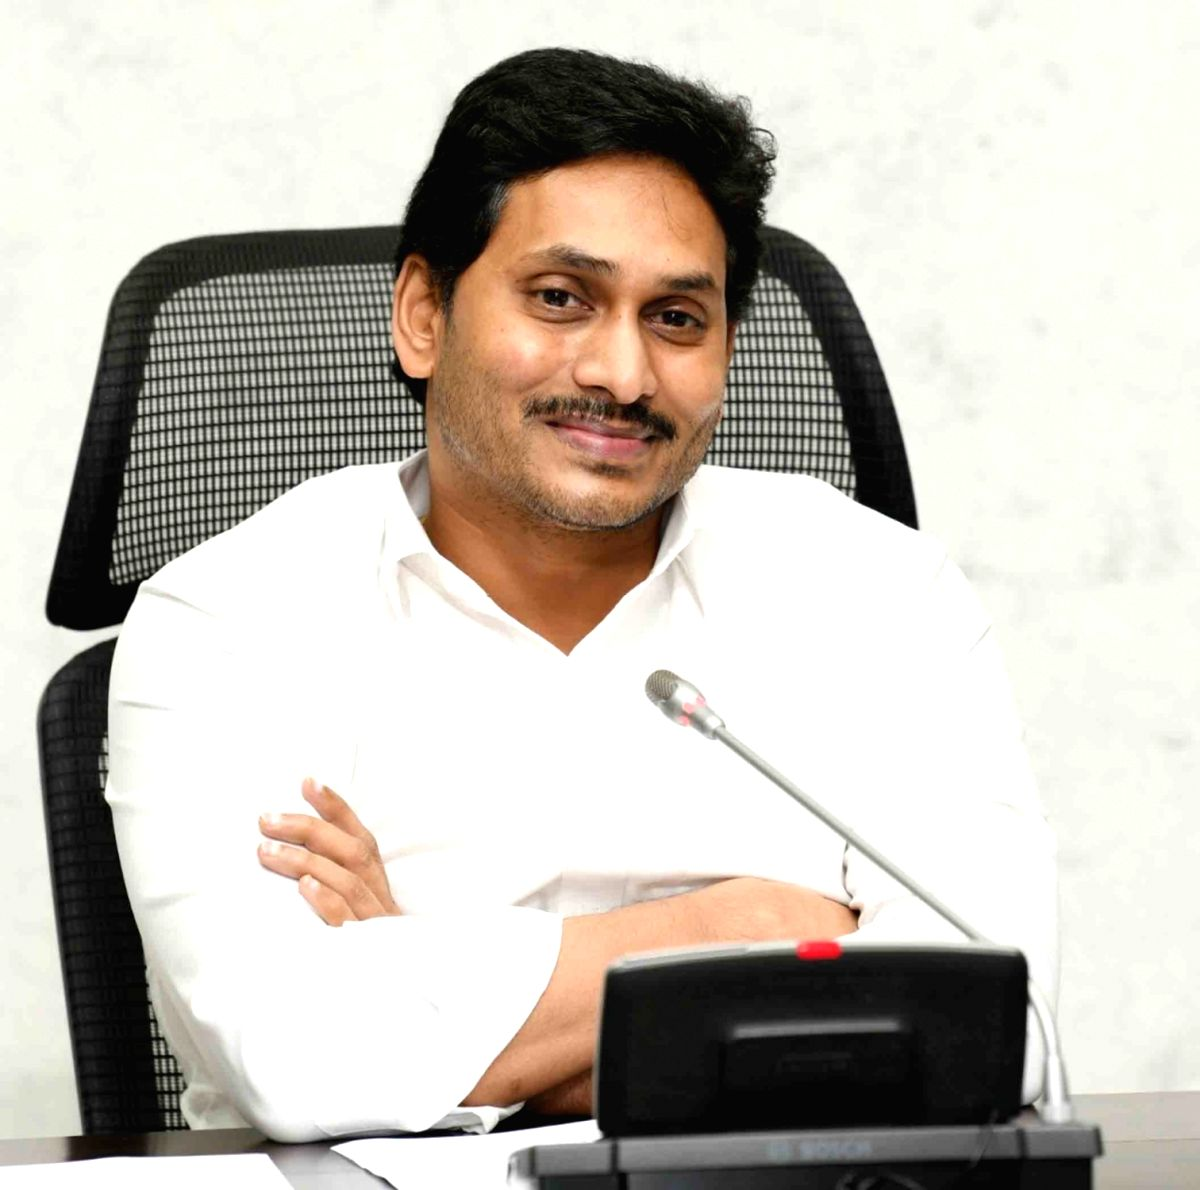 Hyderabad: Andhra Pradesh Chief Minister Y. S. Jagan Mohan Reddy launched the 'YSR Asara' scheme, which will benefit 87 lakh women belonging to 8.71 lakh self-help groups (SHGs), in Amaravati on Sep 11, 2020. On Friday, Reddy released the first insta